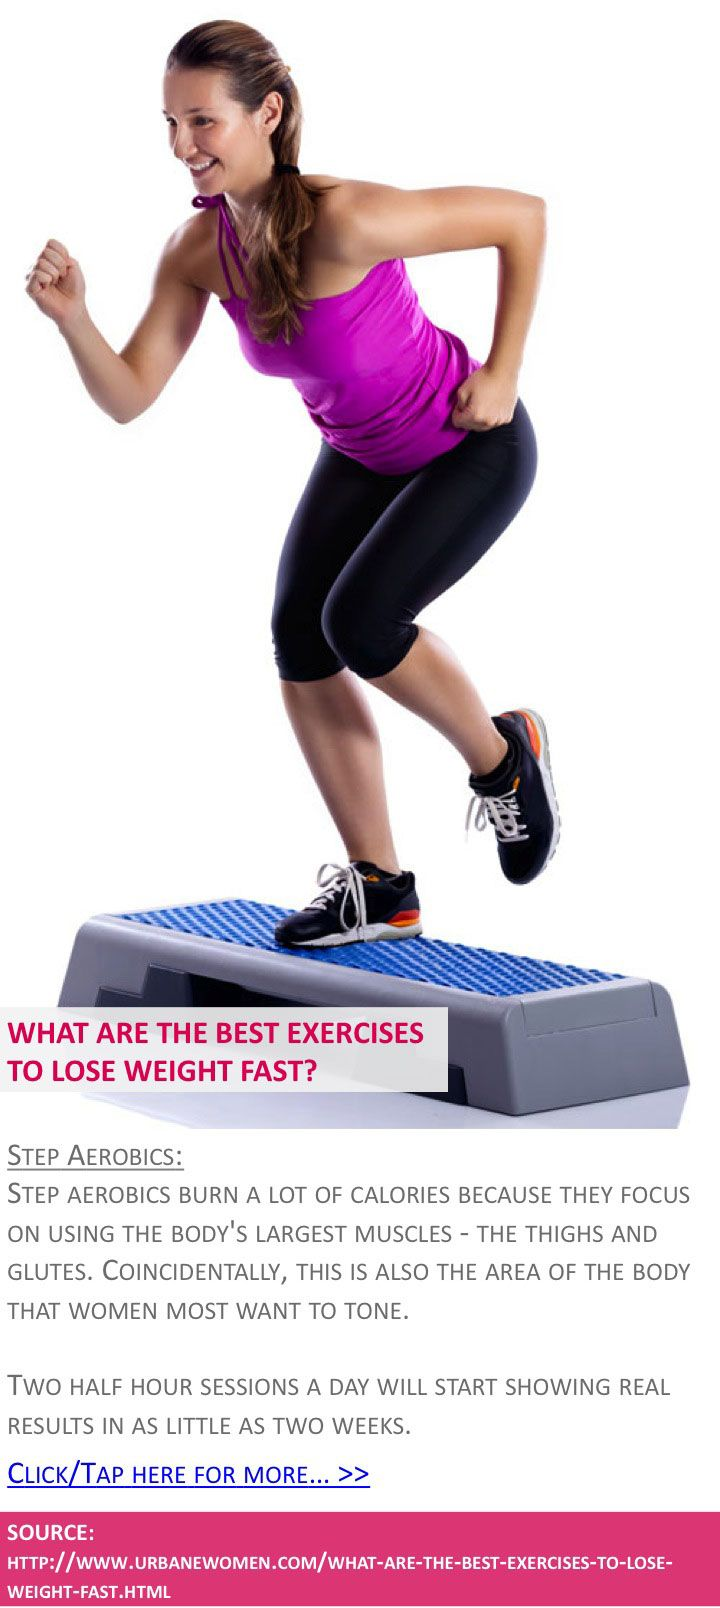 Best Exercises Targeting Each Muscle Group Of The Body: What Are The Best Exercises To Lose Weight Fast?